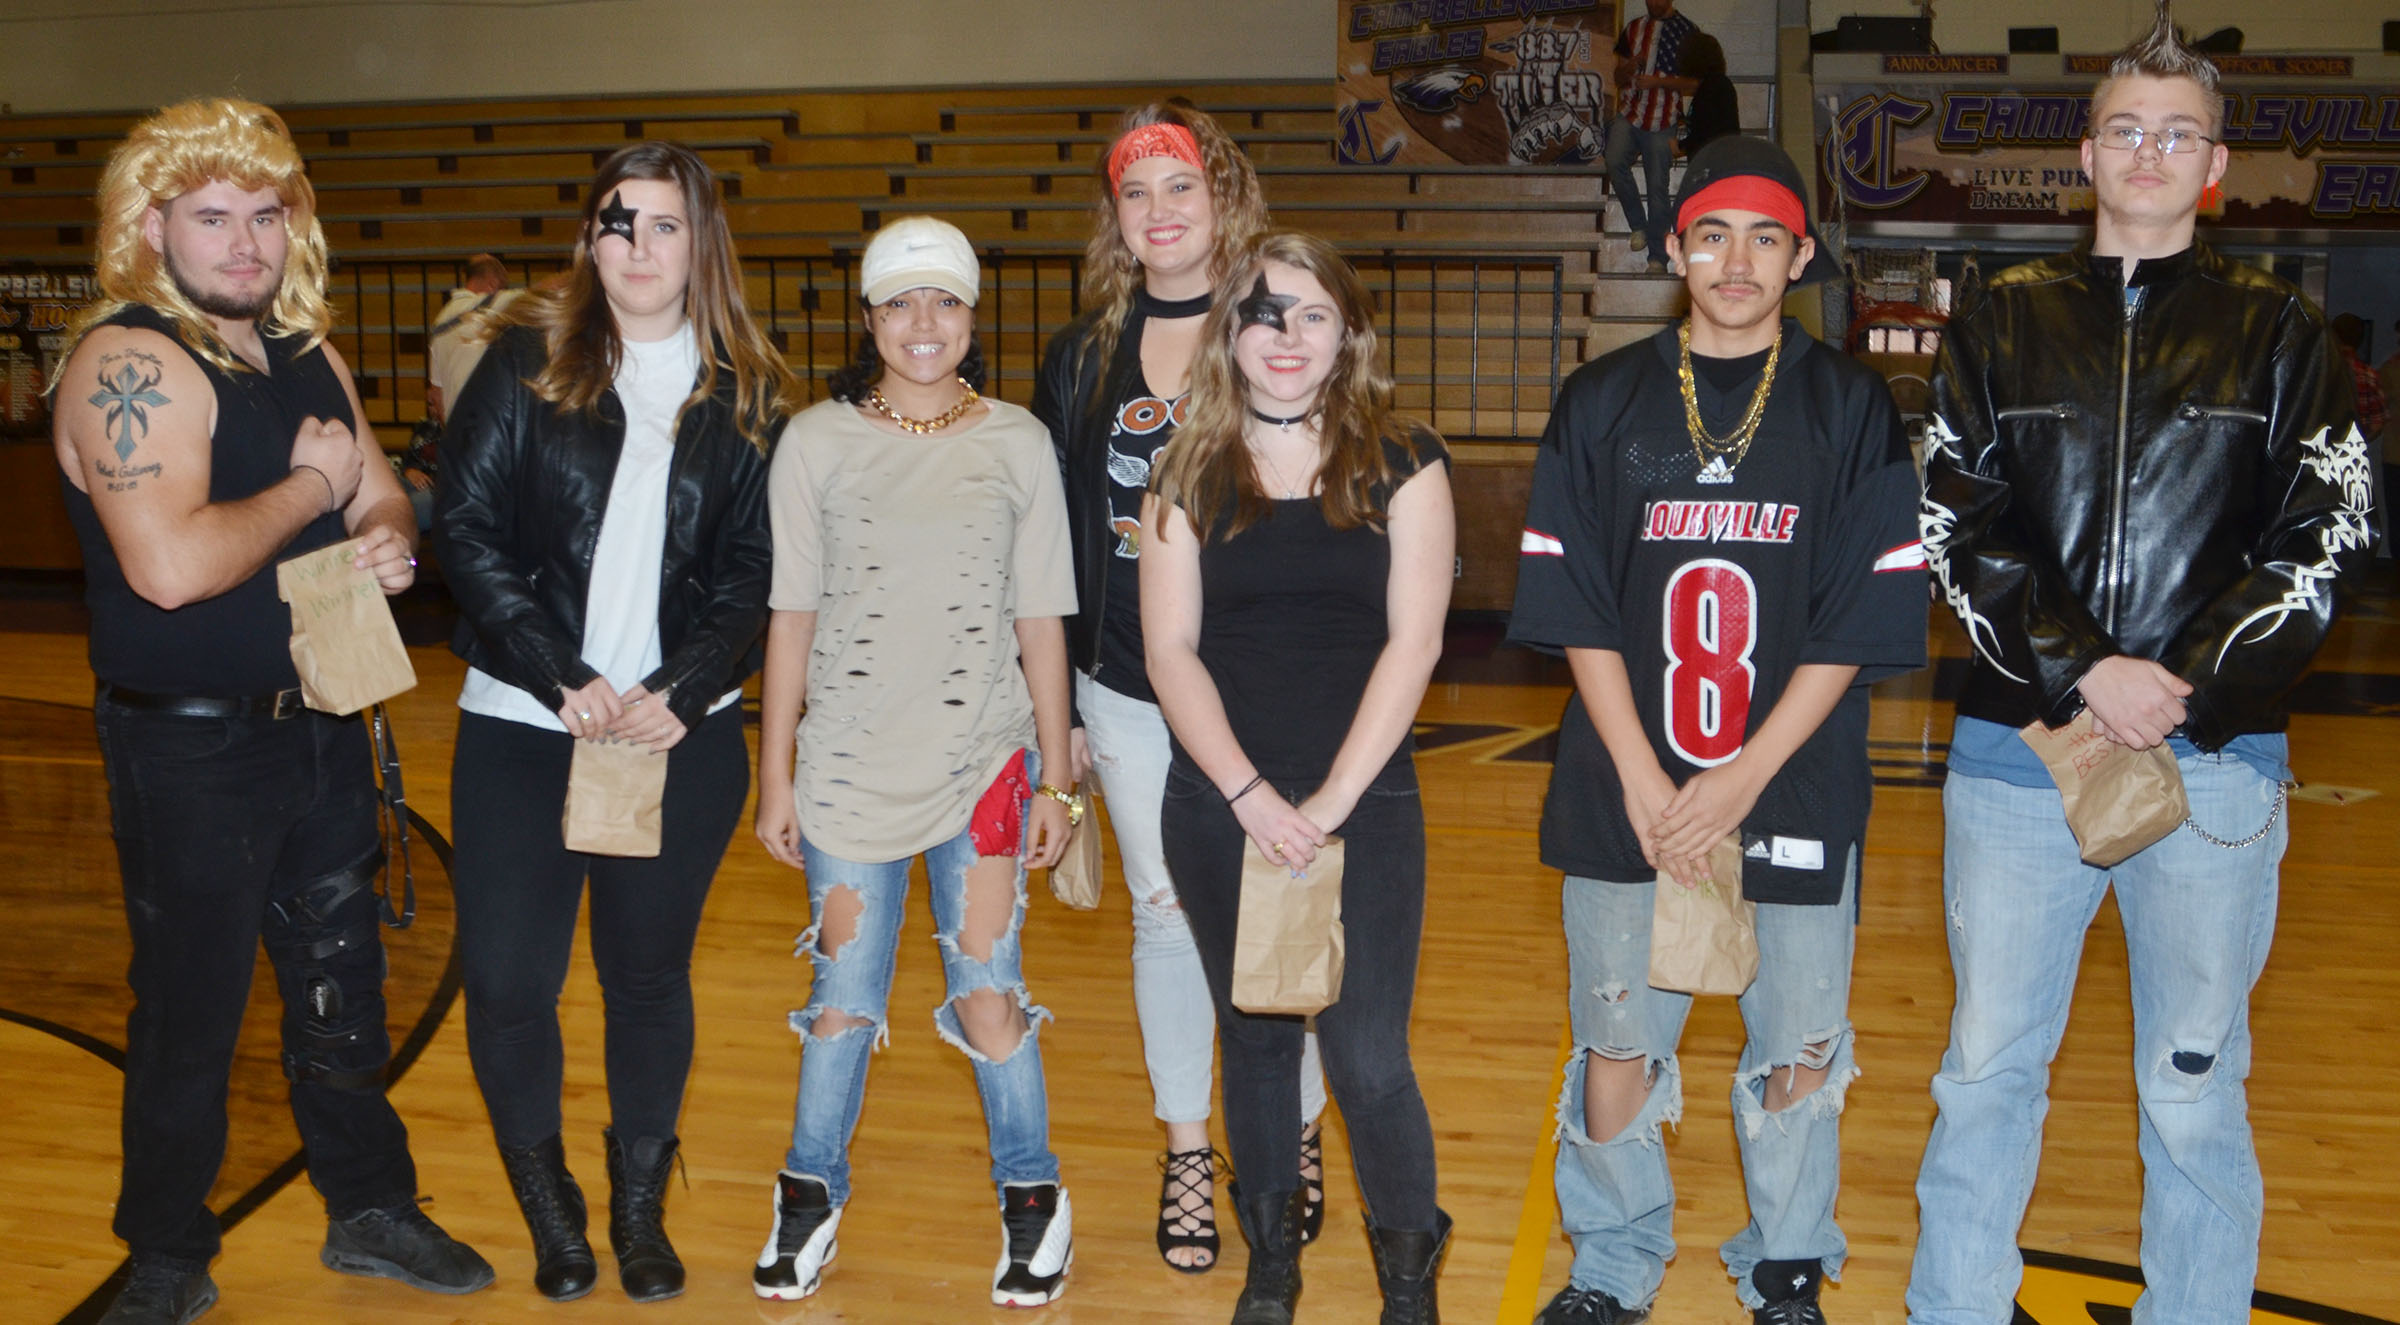 CHS students receive prizes for dressing the best on Rockers vs. Rappers Day.